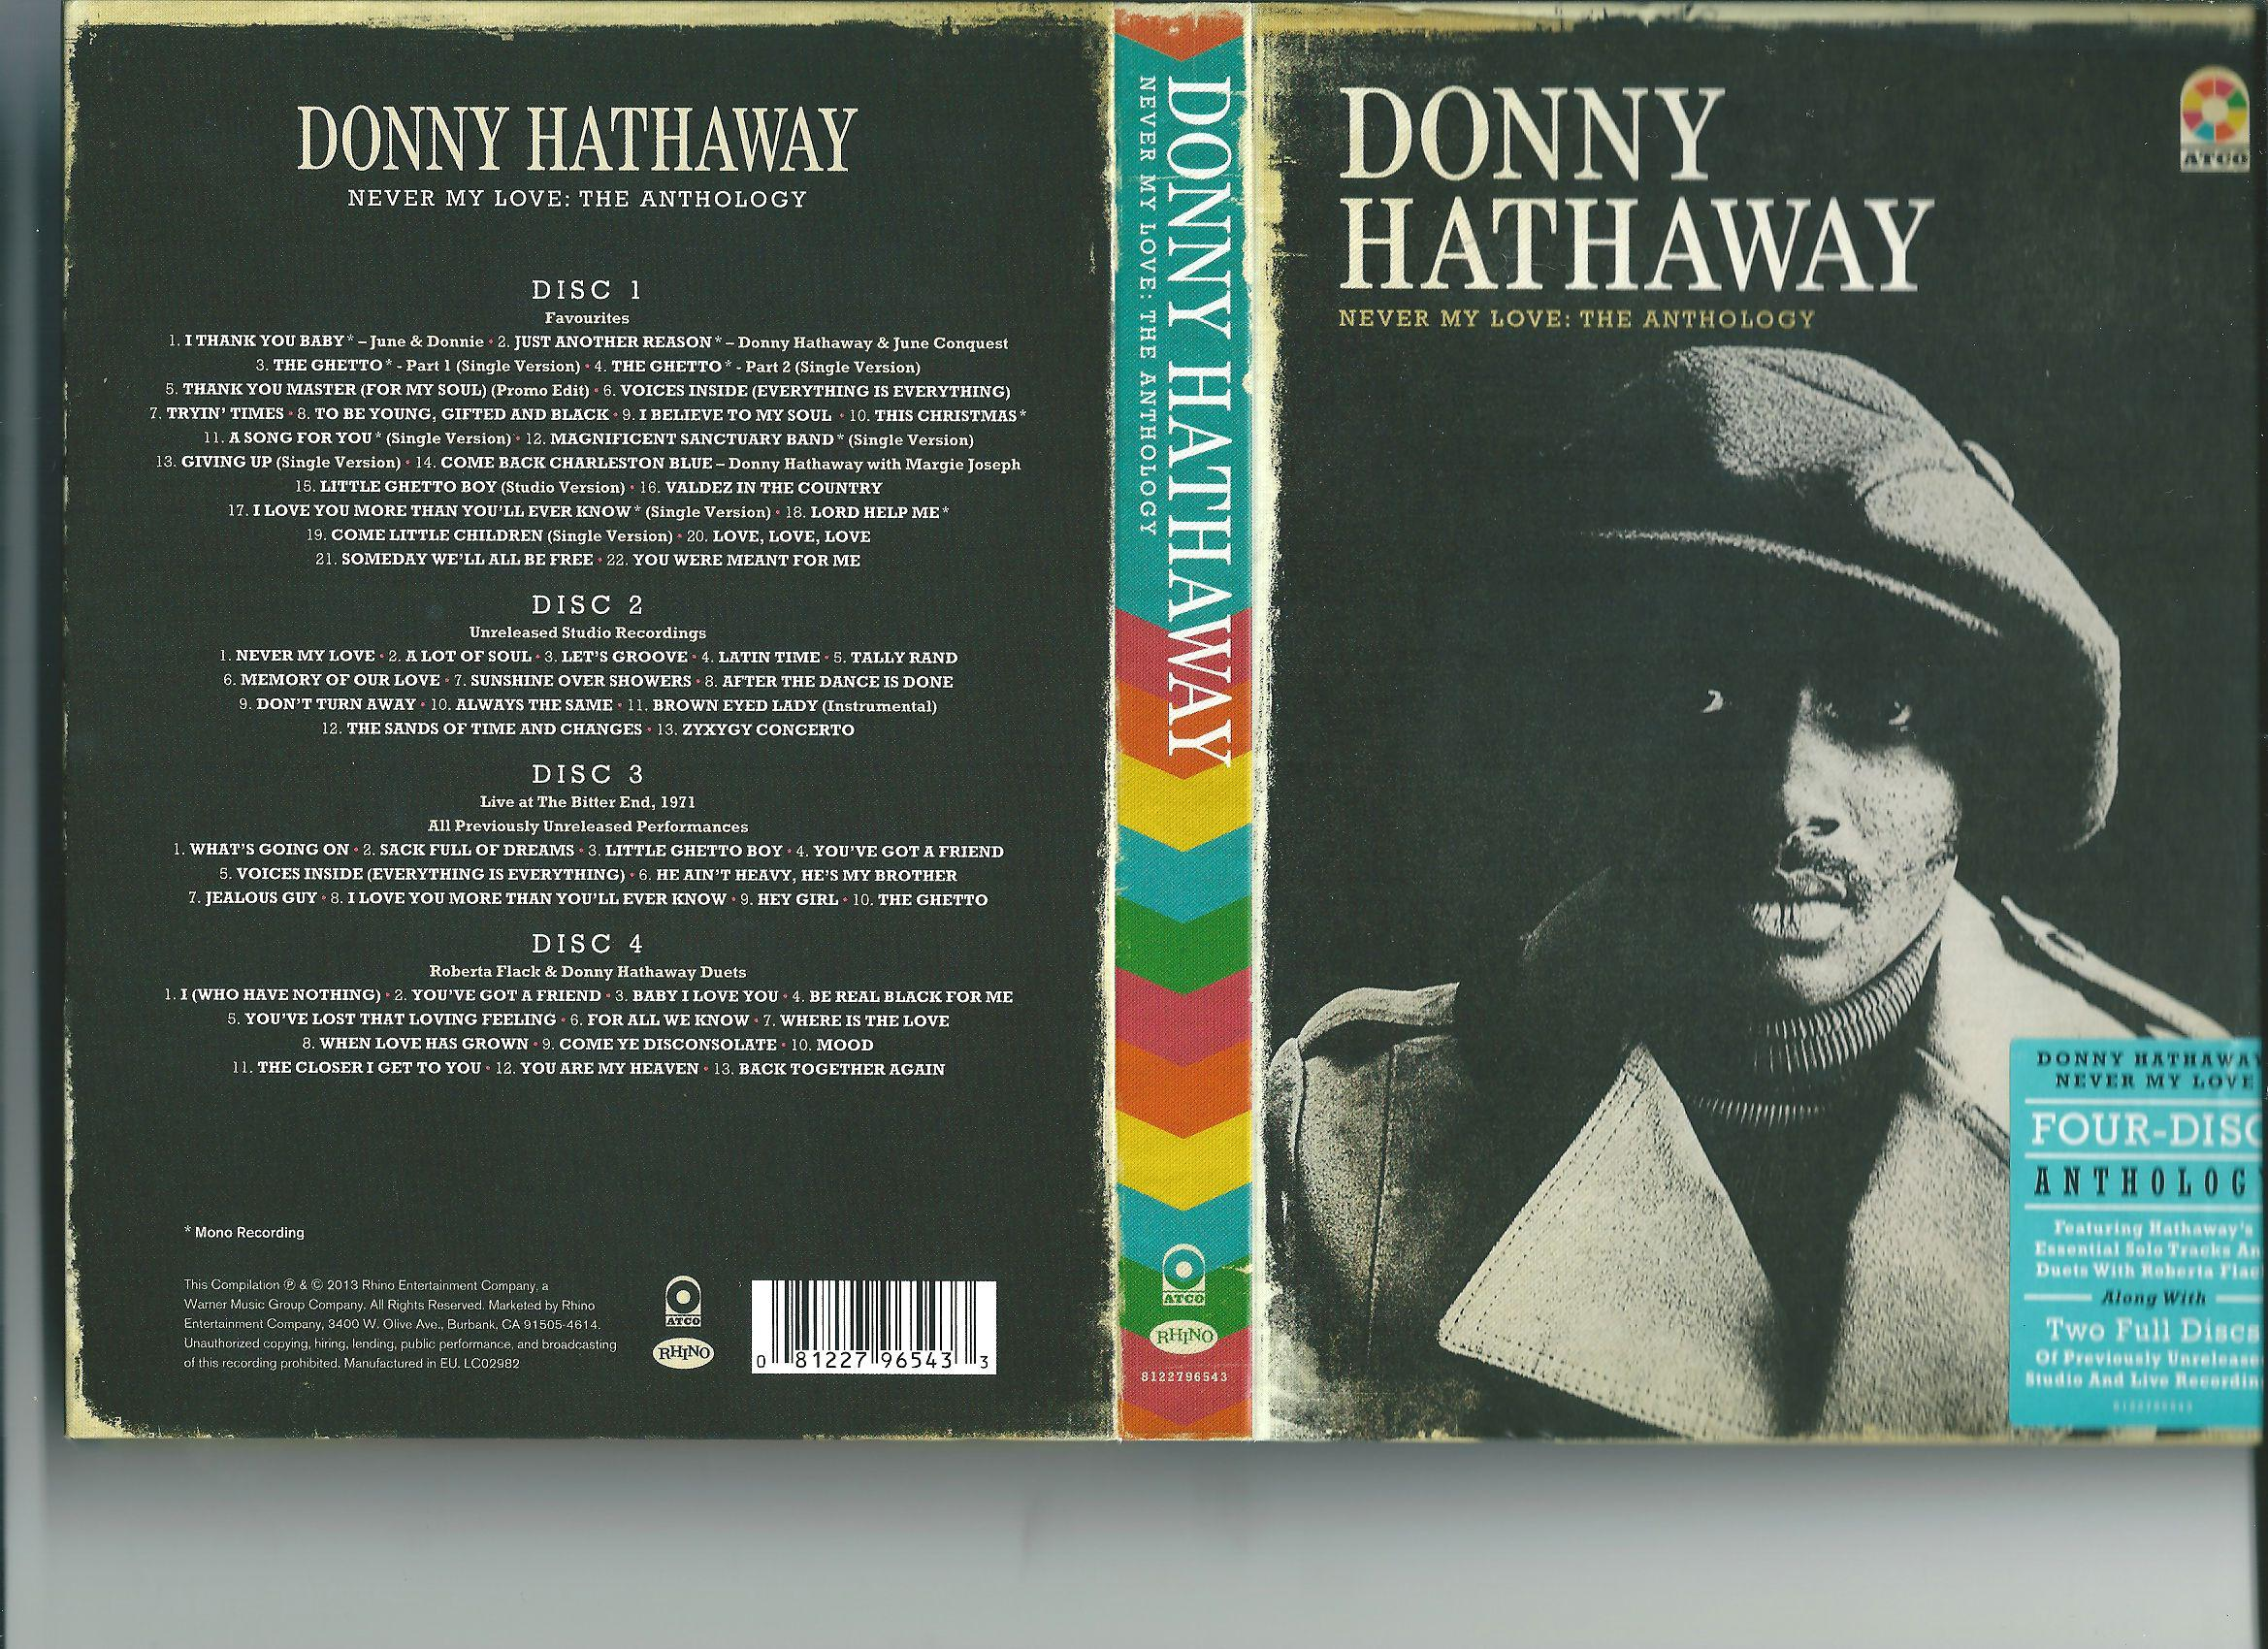 Donny Hathaway - Never My Love: The Anthology (2013) [MULTI]